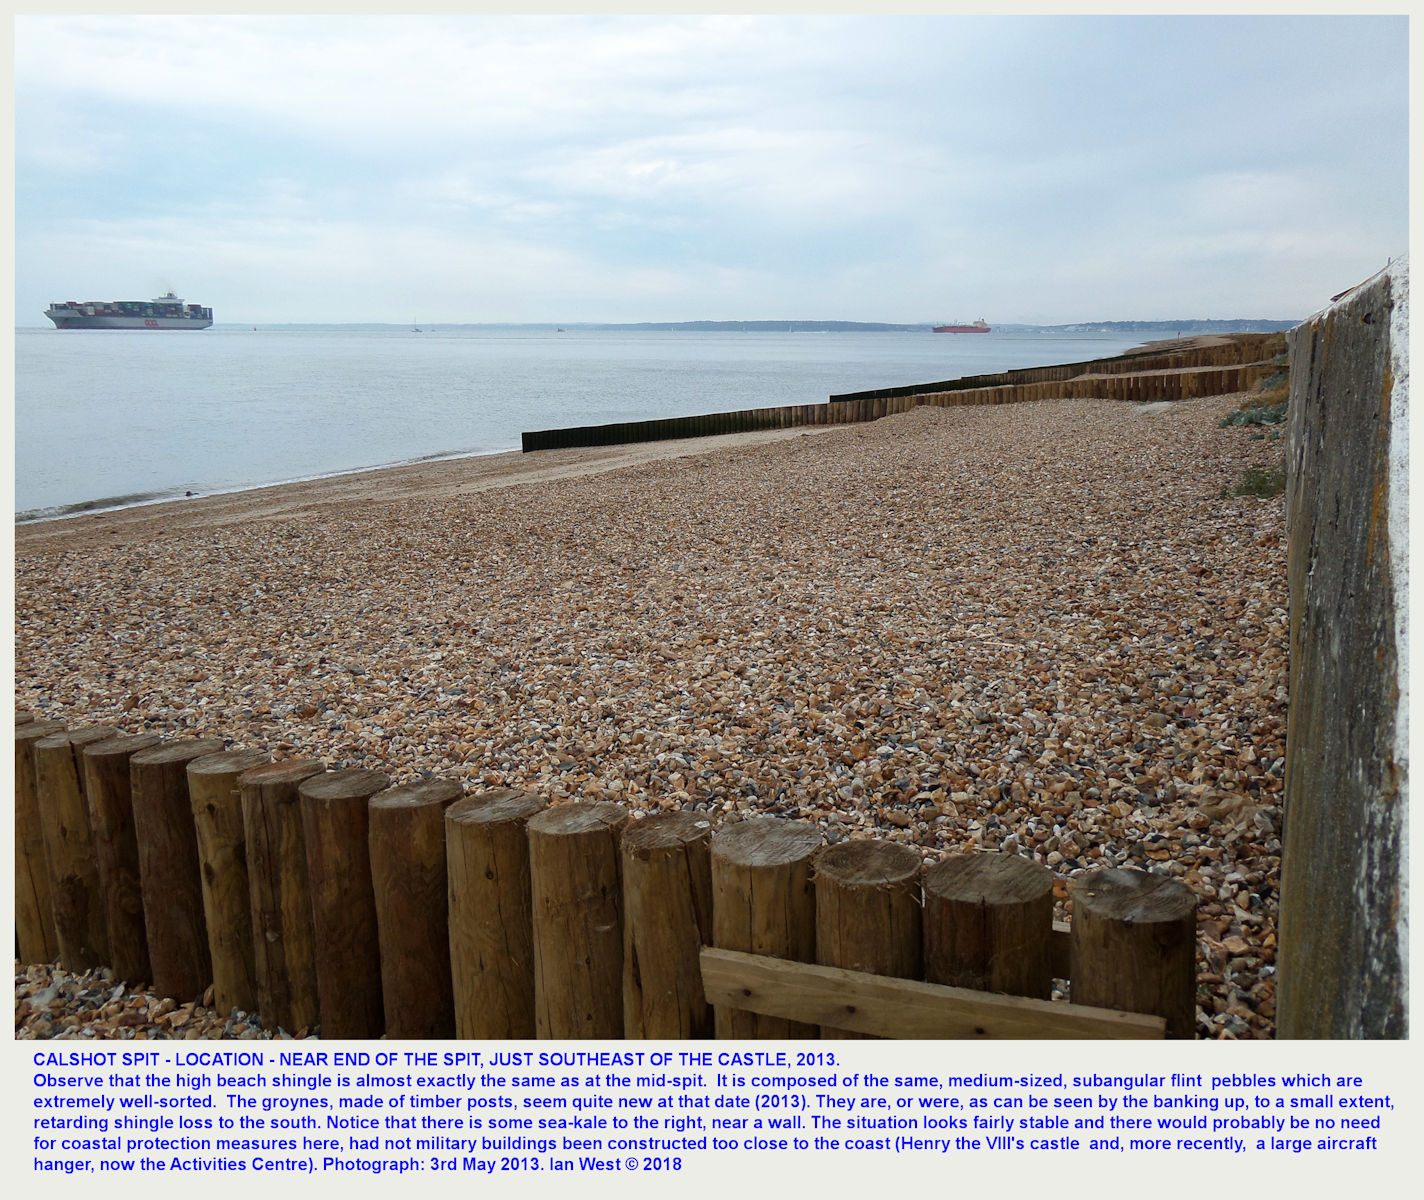 The medium-size, flint shingle beach near the end of Calshot Spit, just southeast of the Castle, as seen in 2013, at that time in good condition with fairly new timber groynes